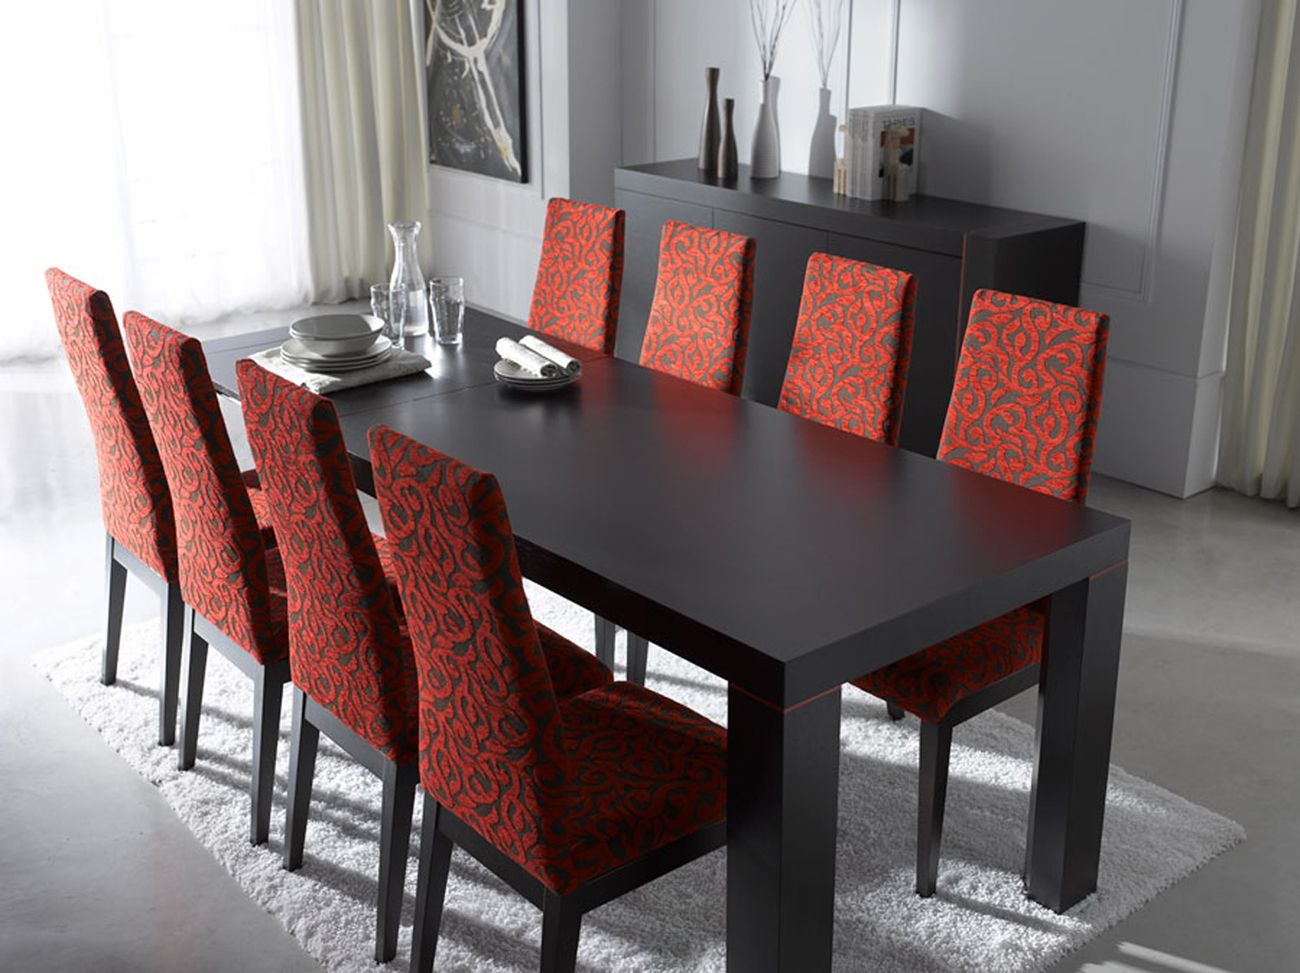 Extendable Rectangular In Wood Fabric Seats Modern Furniture Table Set Chicago Illinois Esfine